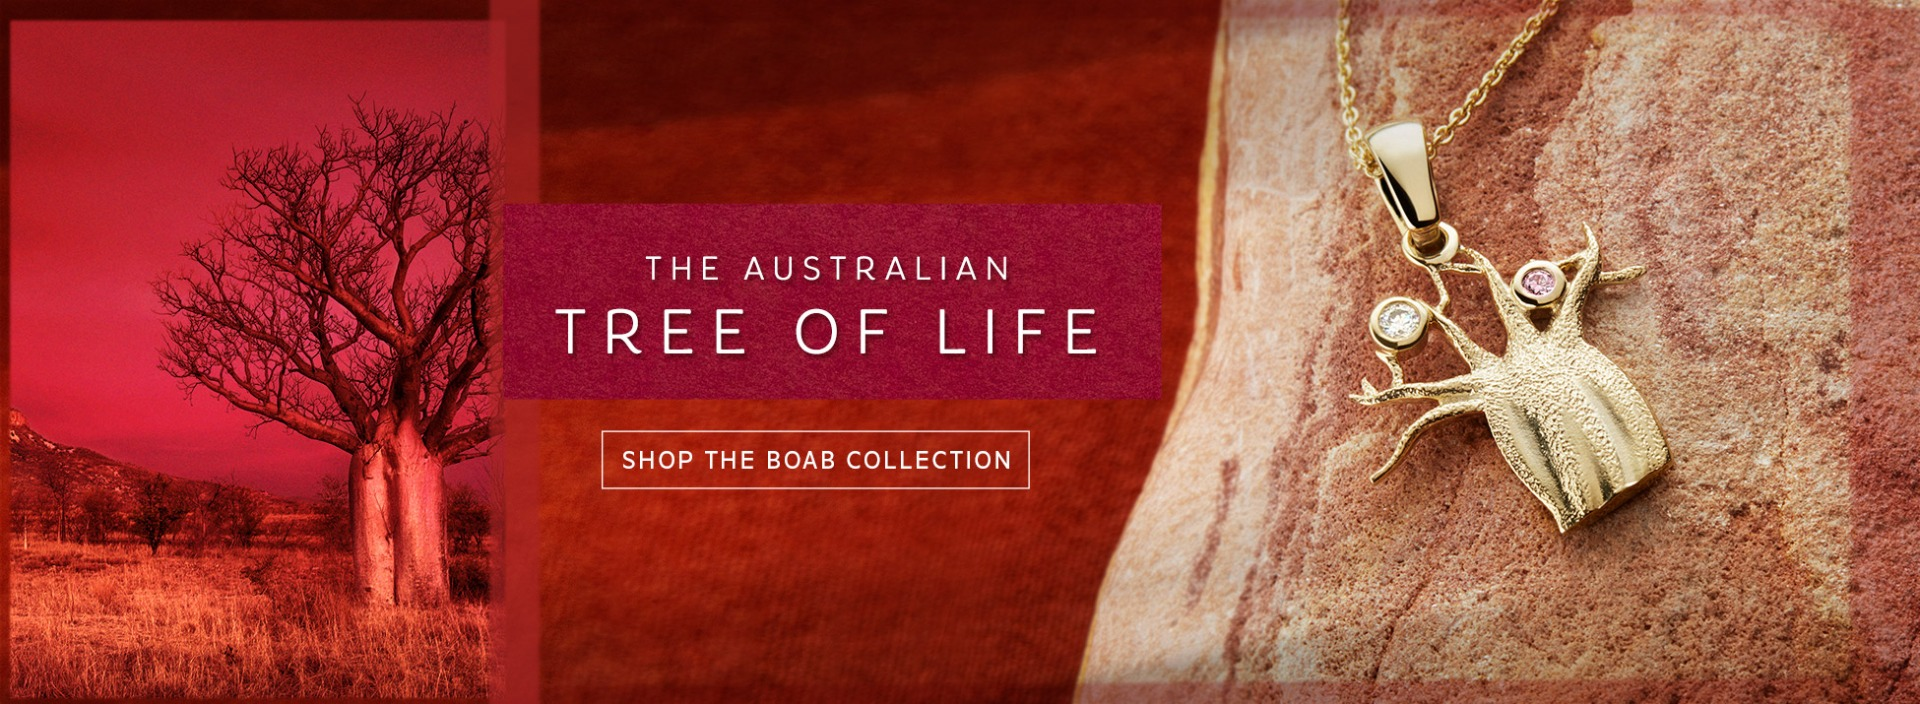 The Australian Tree of Life - The Boab Collection